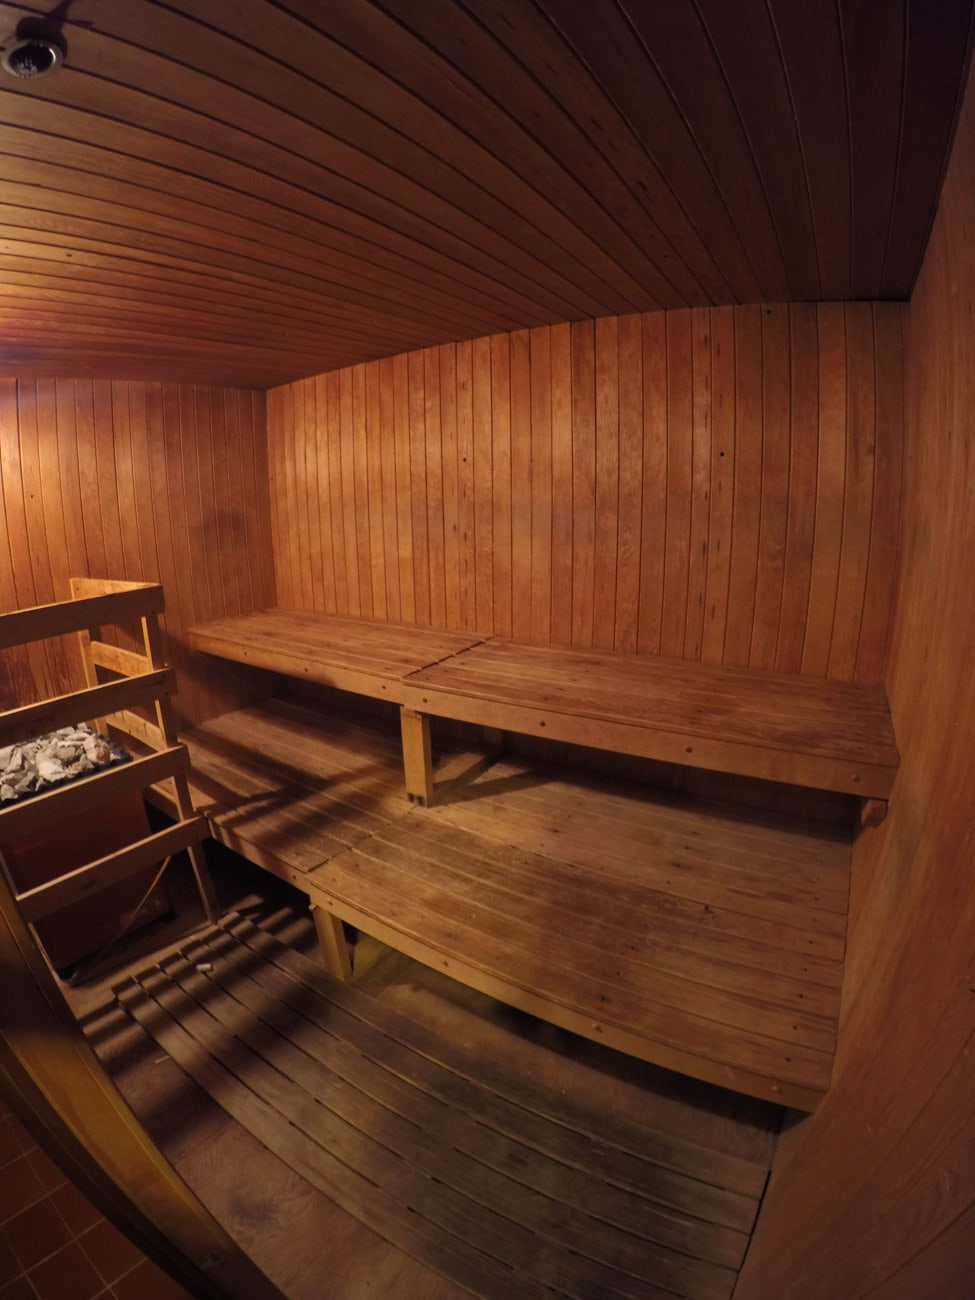 Amenities at the Alta Lodge include mens and womens saunas